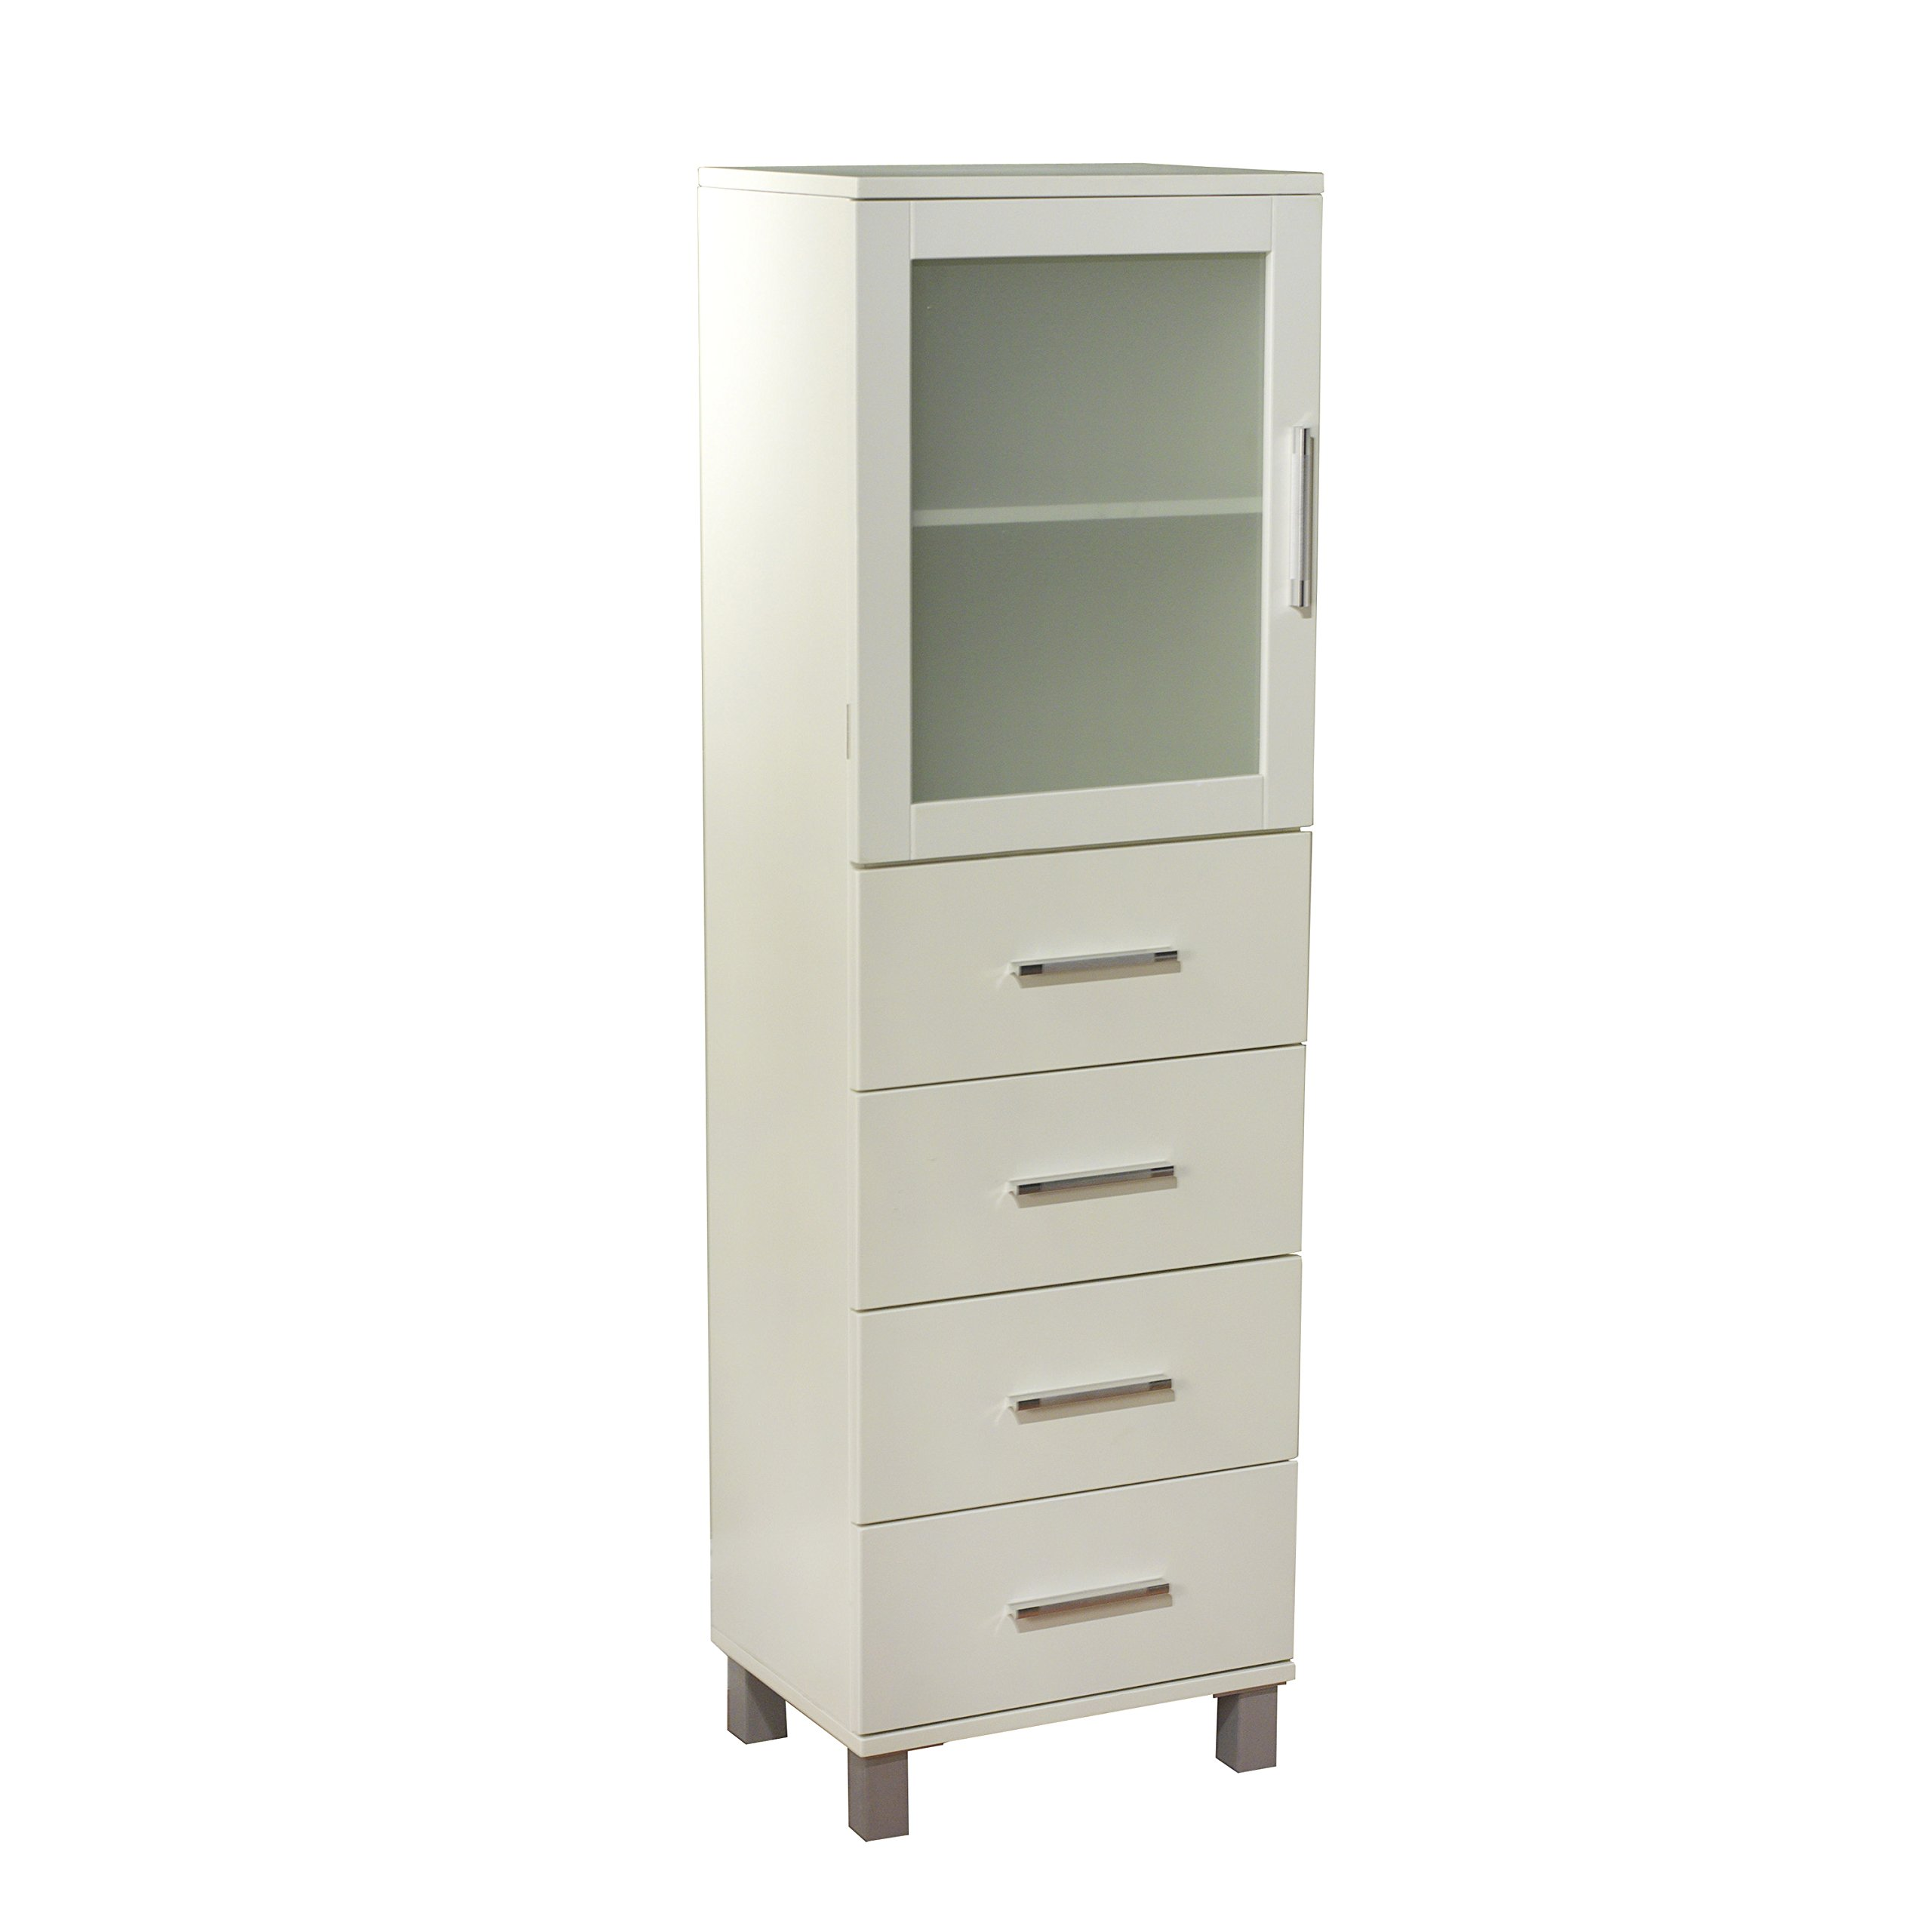 Target Marketing Systems 50027WHT Frosted Pane 4 Drawer Linen Cabinet, Antique White by Target Marketing Systems